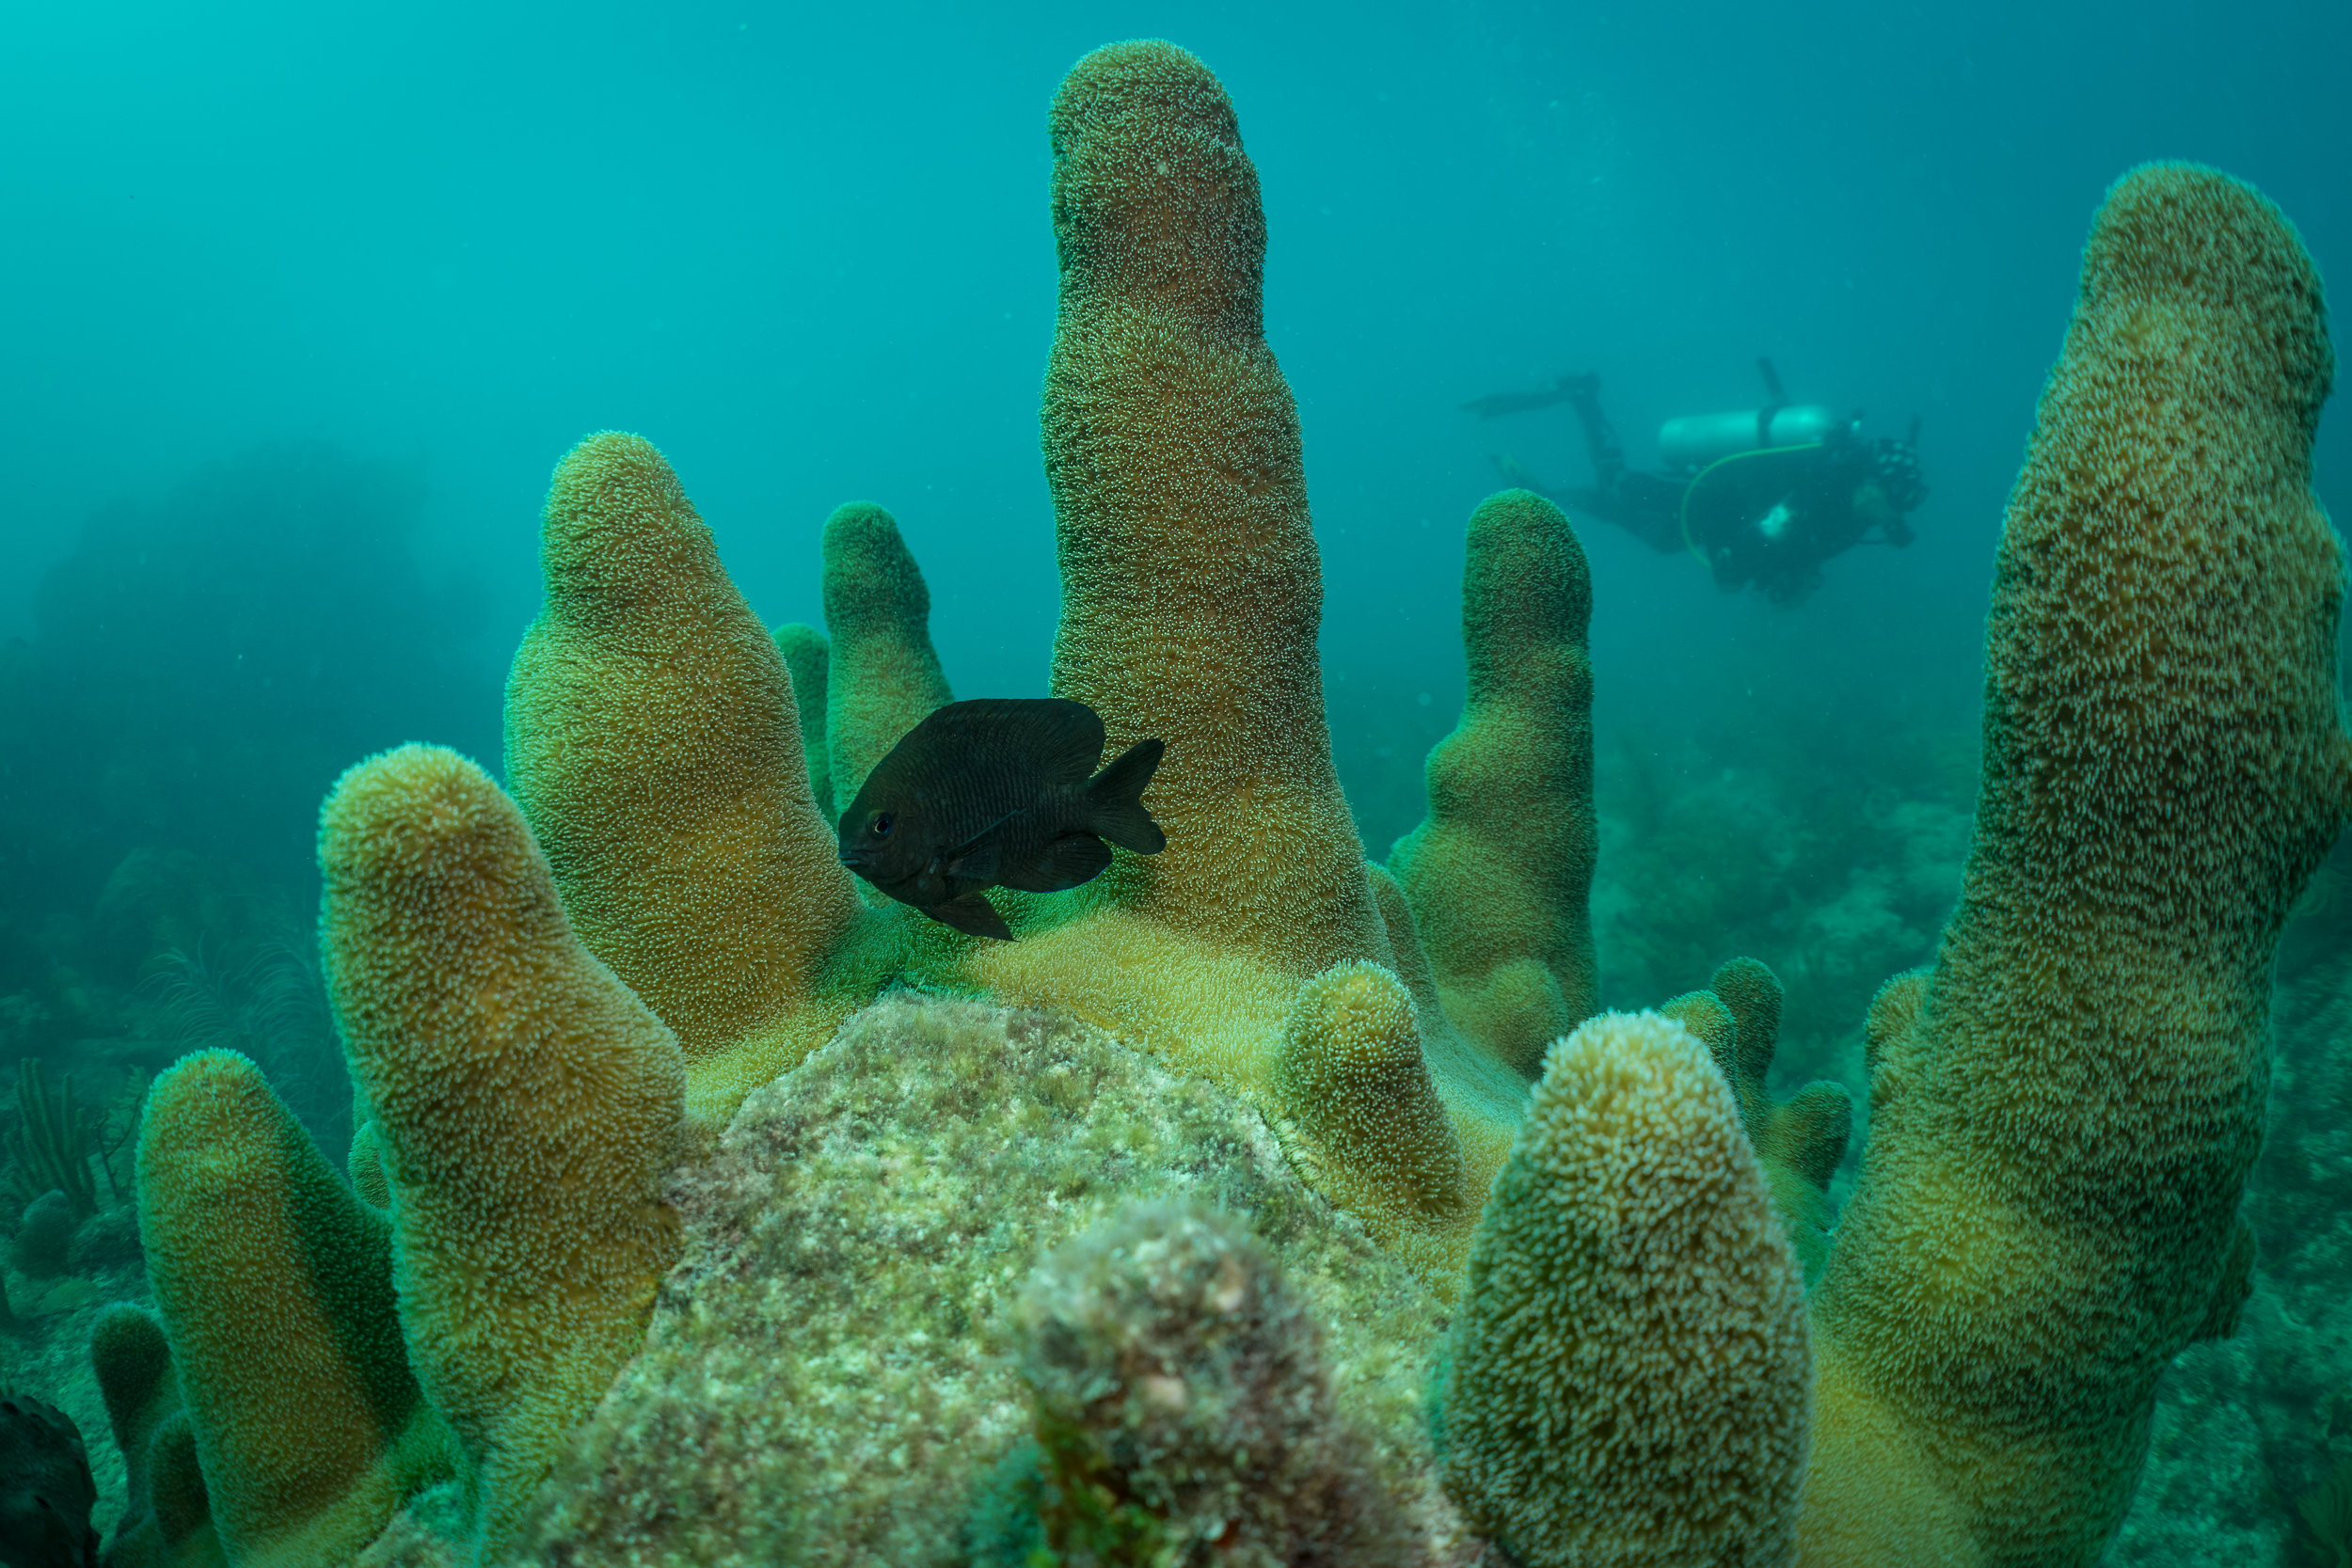 Many fish seek protection between the pillars where larger predators may have a difficult time accessing.